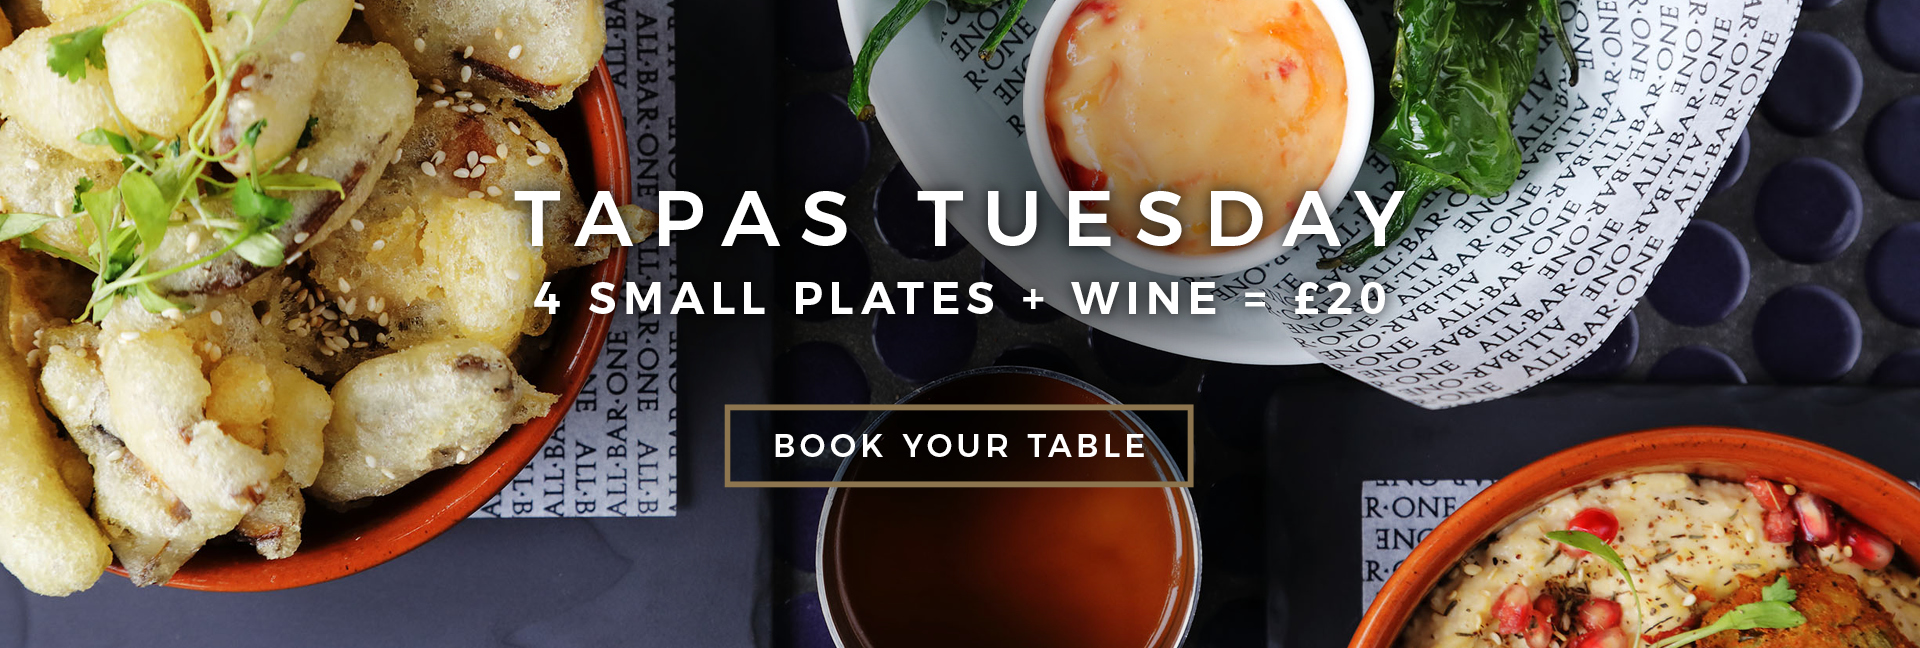 Tapas Tuesday at All Bar One Liverpool - Book now